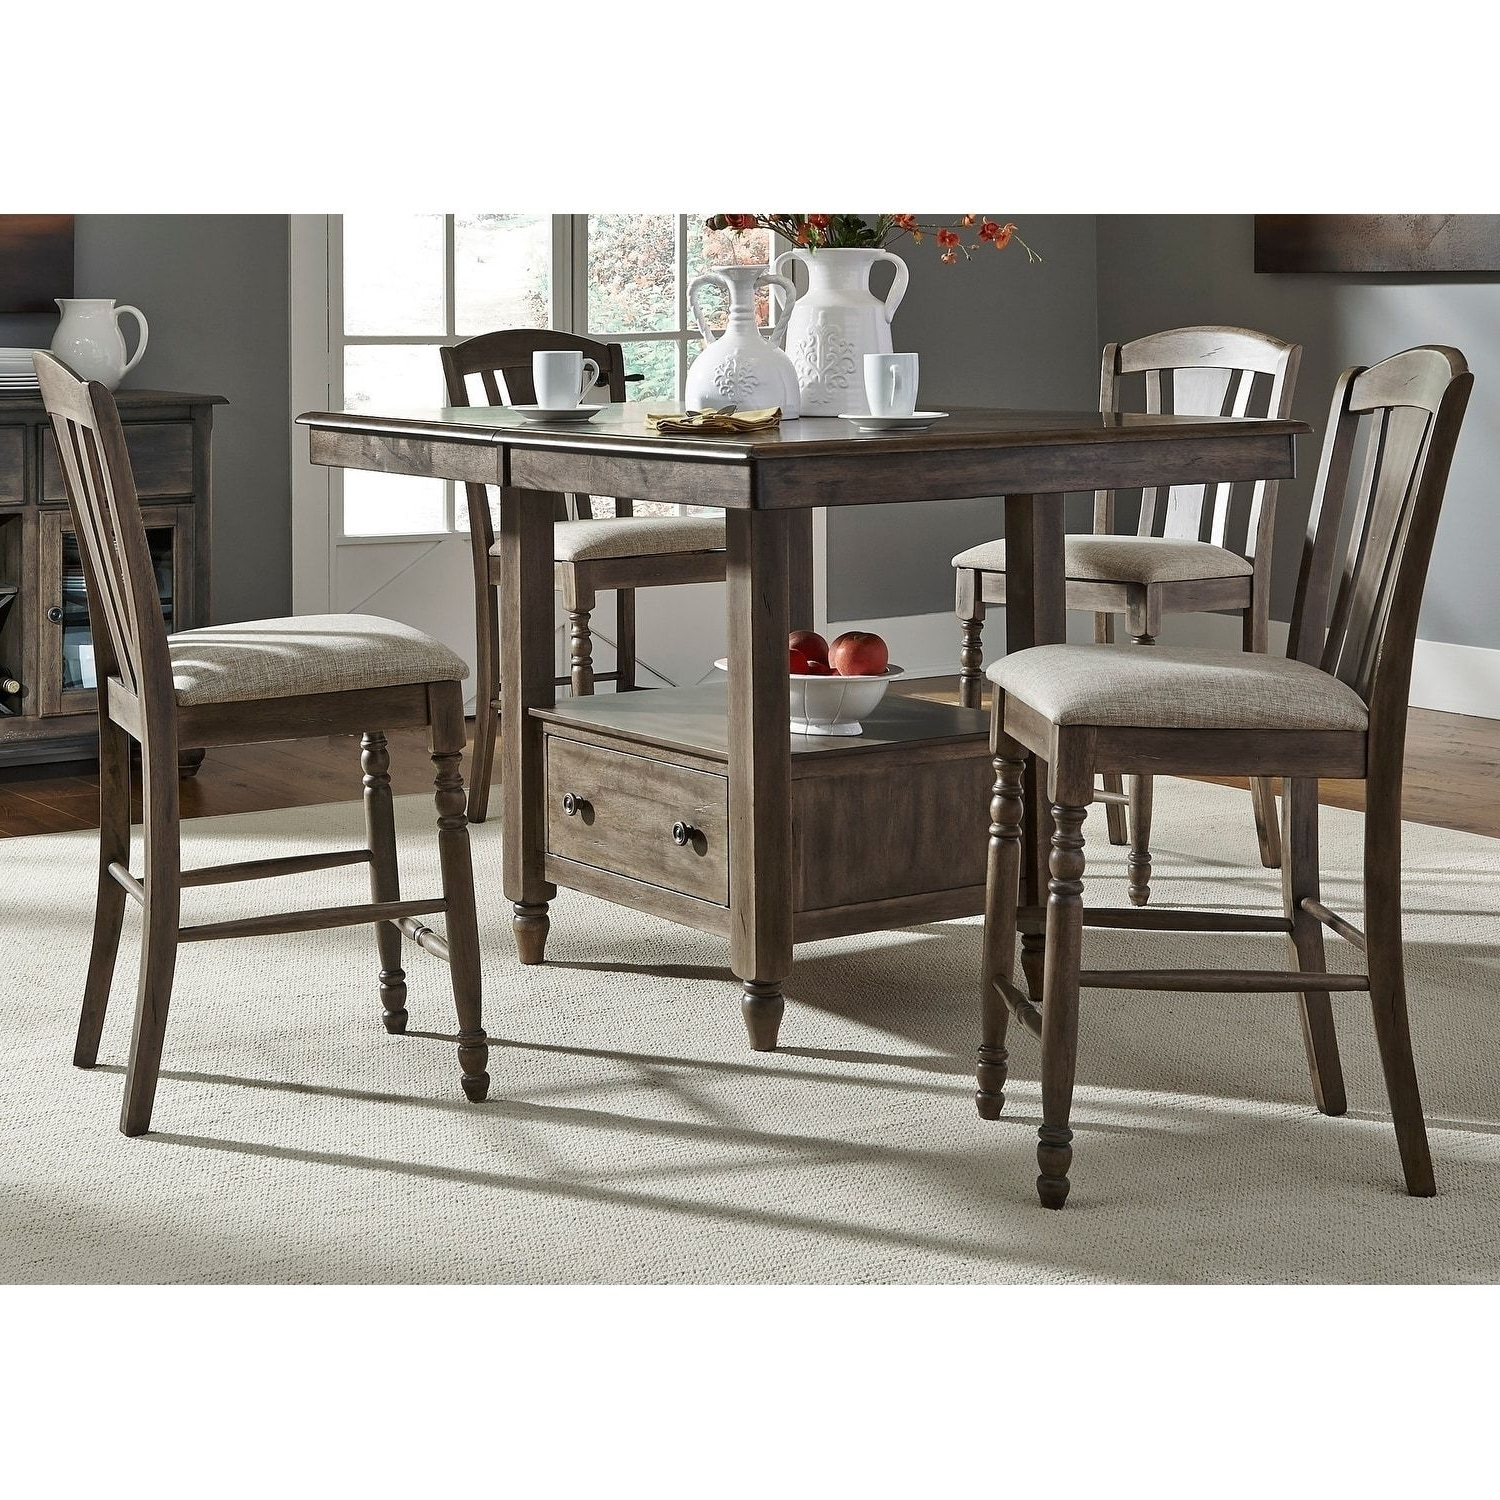 Well Liked Liberty Candlewood Weather Grey 7 Piece Slat Back Gathering Dinette Pertaining To Combs 7 Piece Dining Sets With  Mindy Slipcovered Chairs (View 16 of 25)